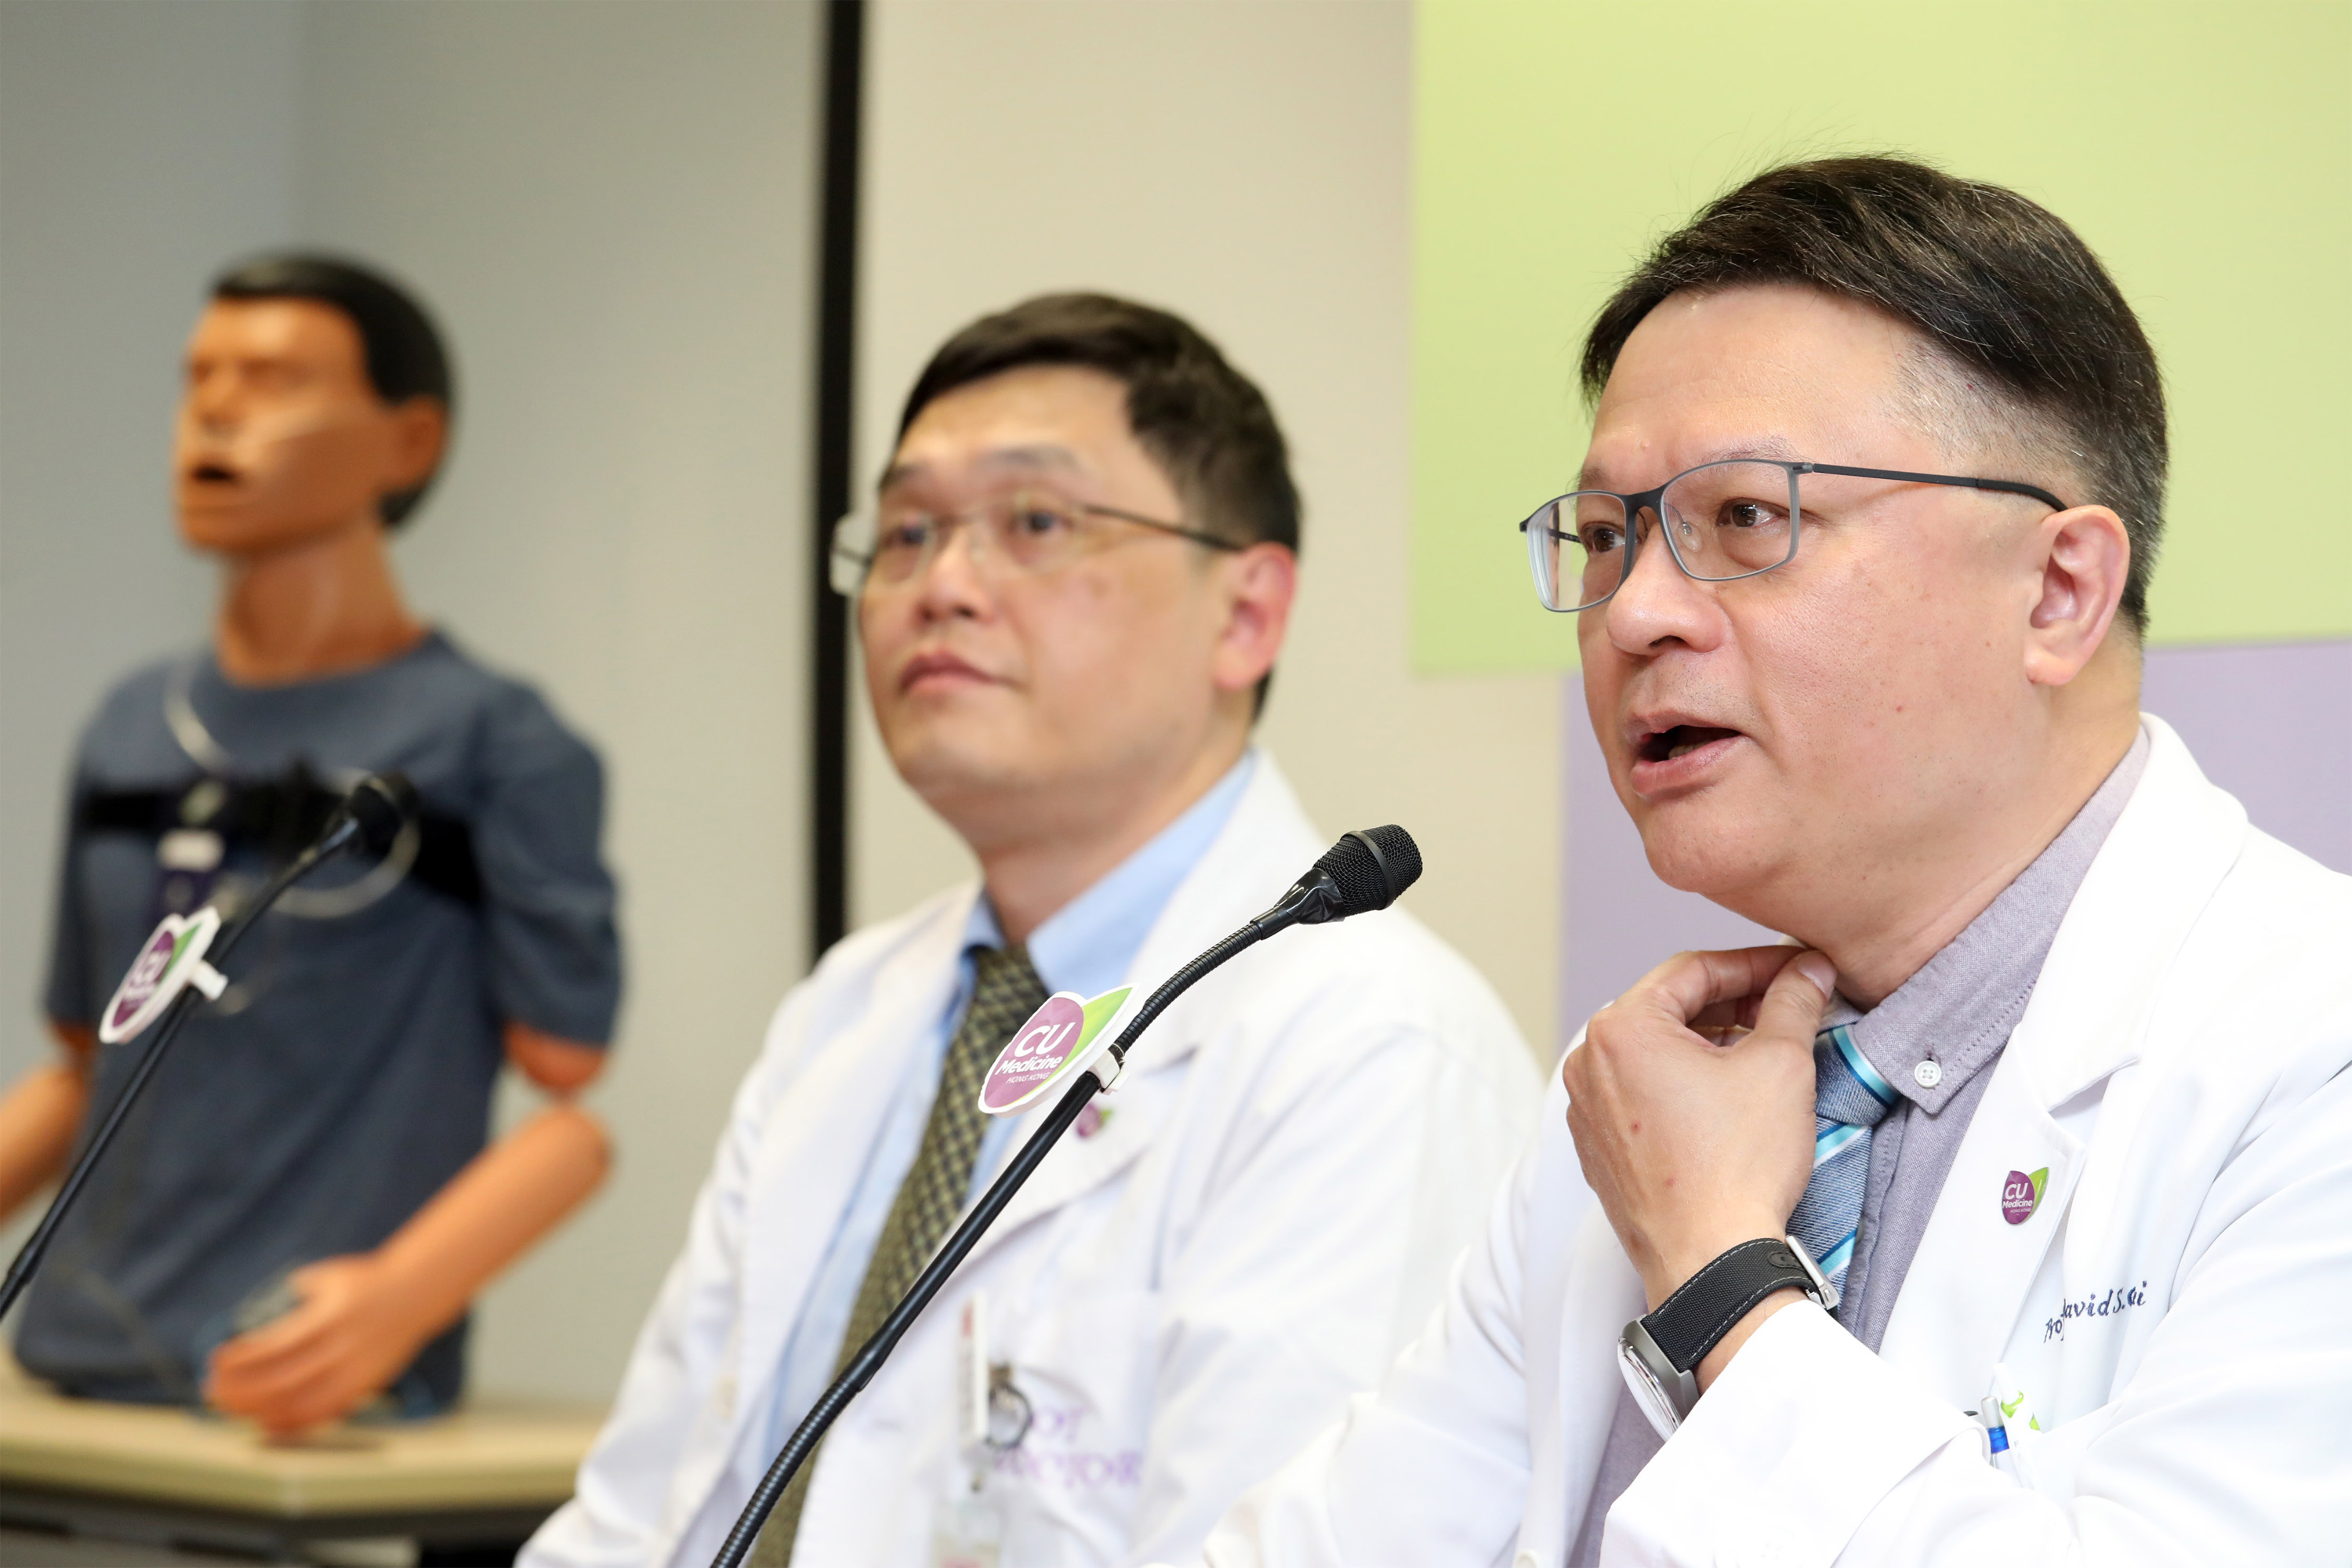 Professor David Shu Cheong HUI (right), Chairman and Stanley Ho Professor of Respiratory Medicine, Department of Medicine and Therapeutics, Faculty of Medicine at CUHK explains Asians tend to have shorter or smaller chin, which is one of the risk factors of OSA.